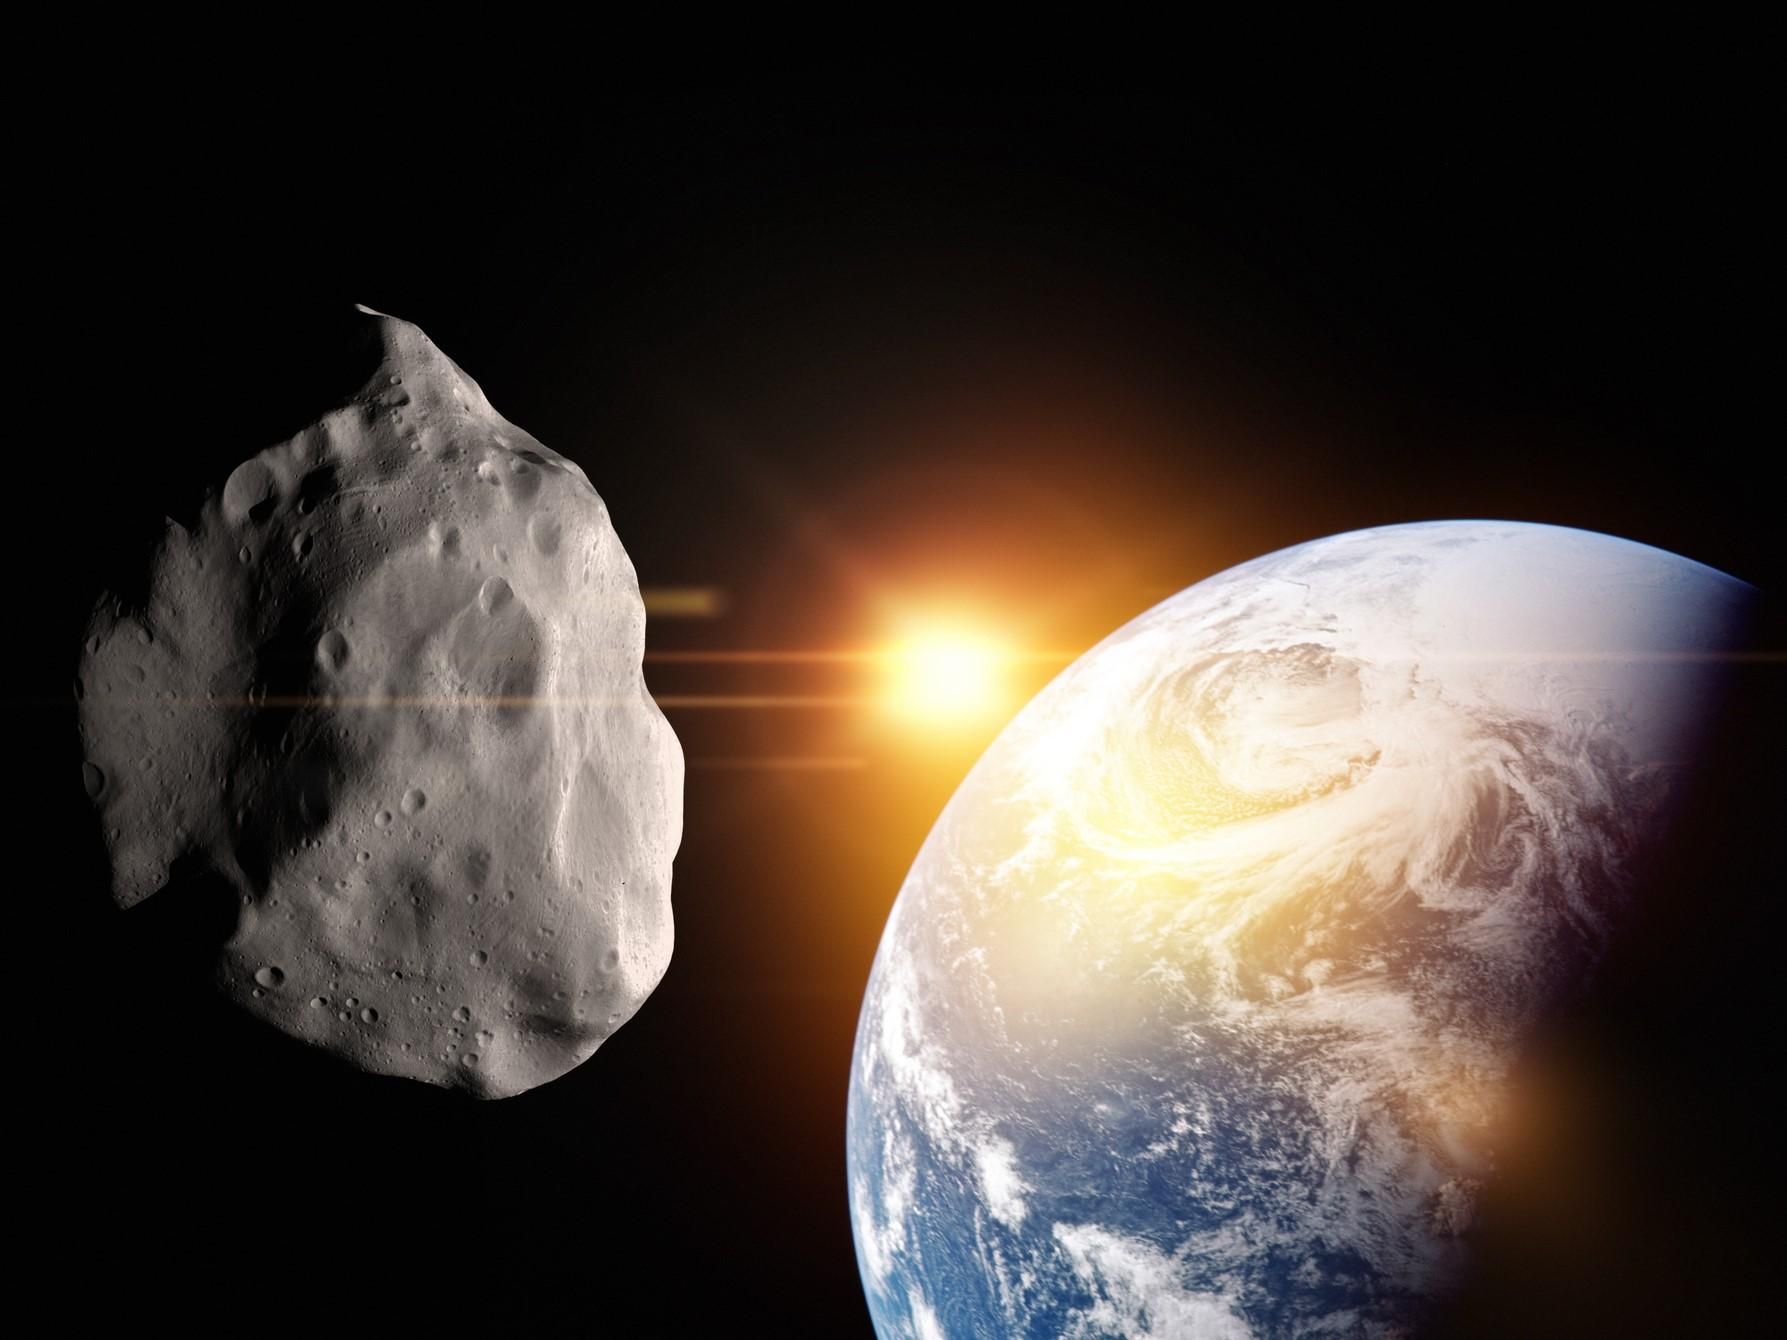 asteroid - latest news, breaking stories and comment - The